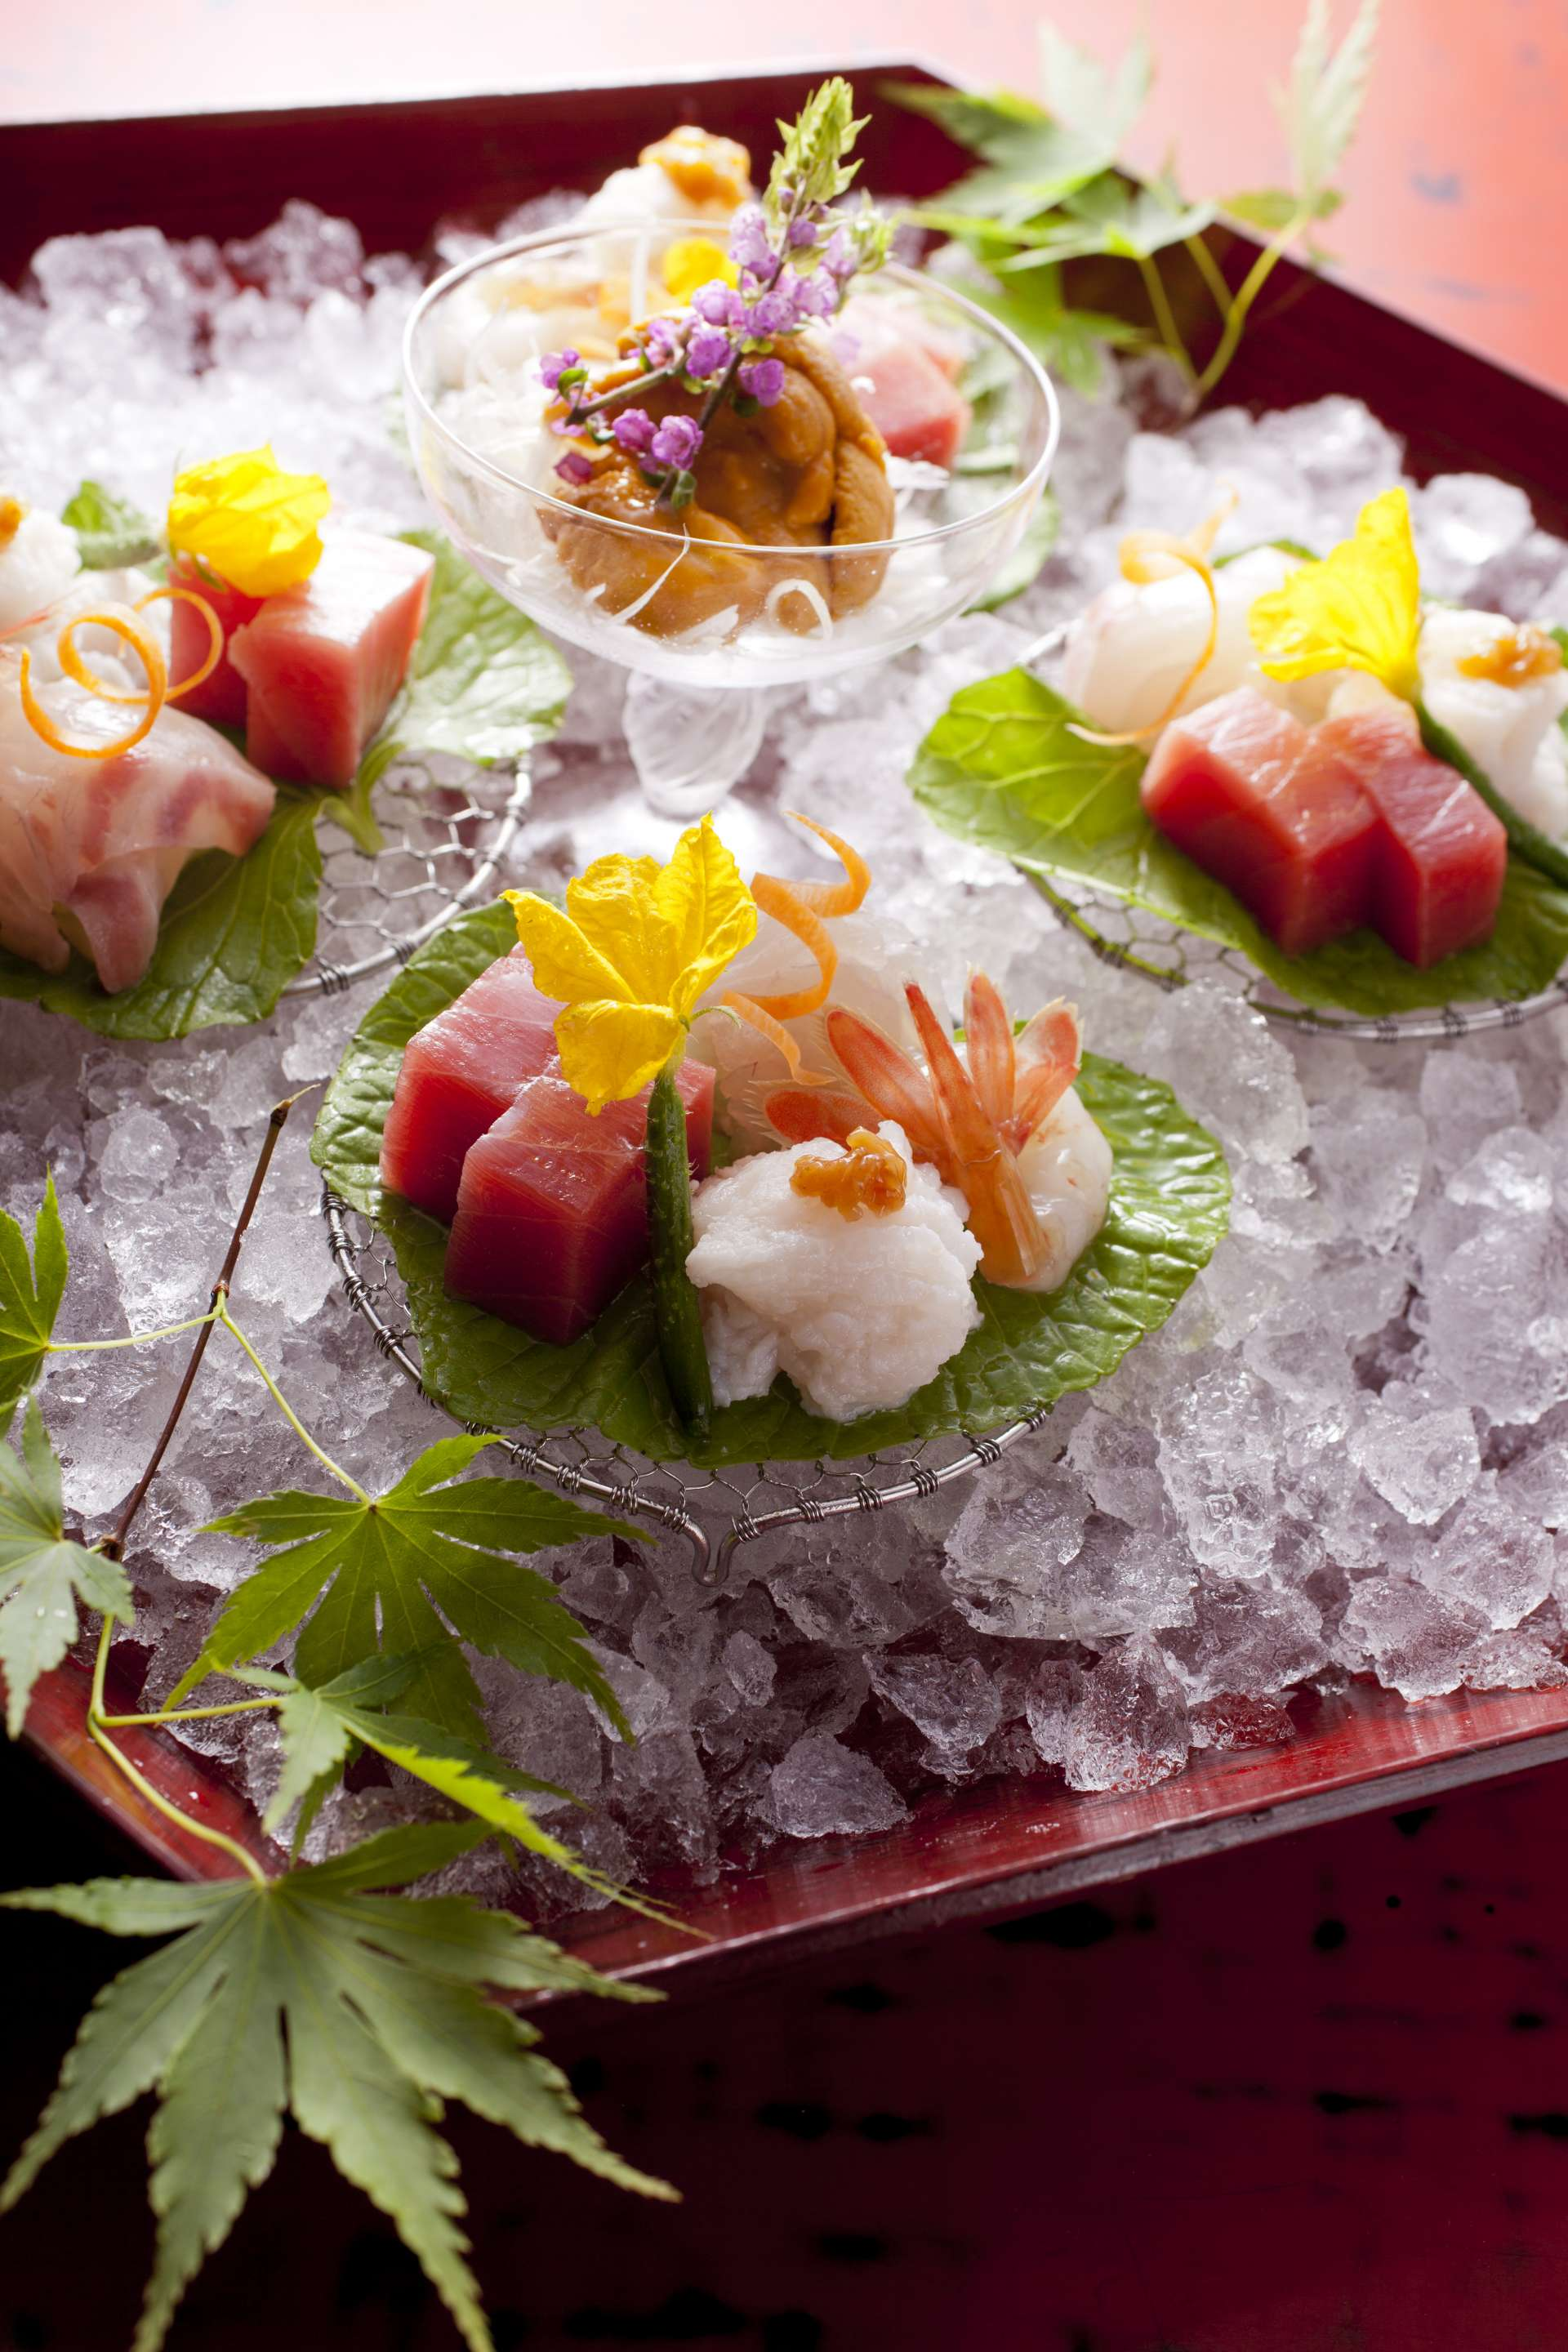 Try a sashimi platter to enjoy fish from the Sanriku region, known as a treasure house of fruits of the sea.